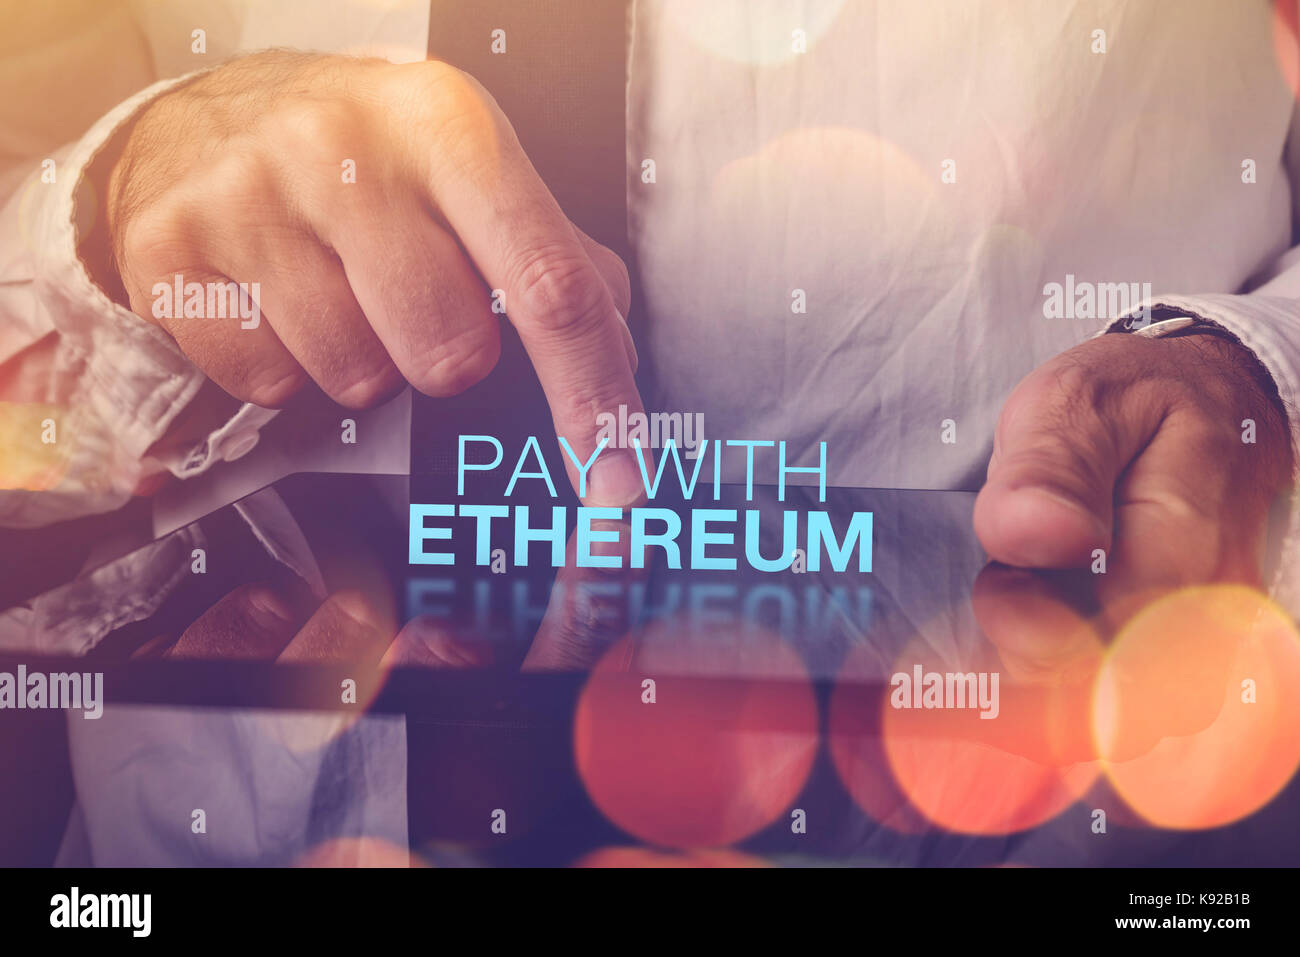 Pay with Ethereum cryptocurrency concept with businessman and digital tablet - Stock Image